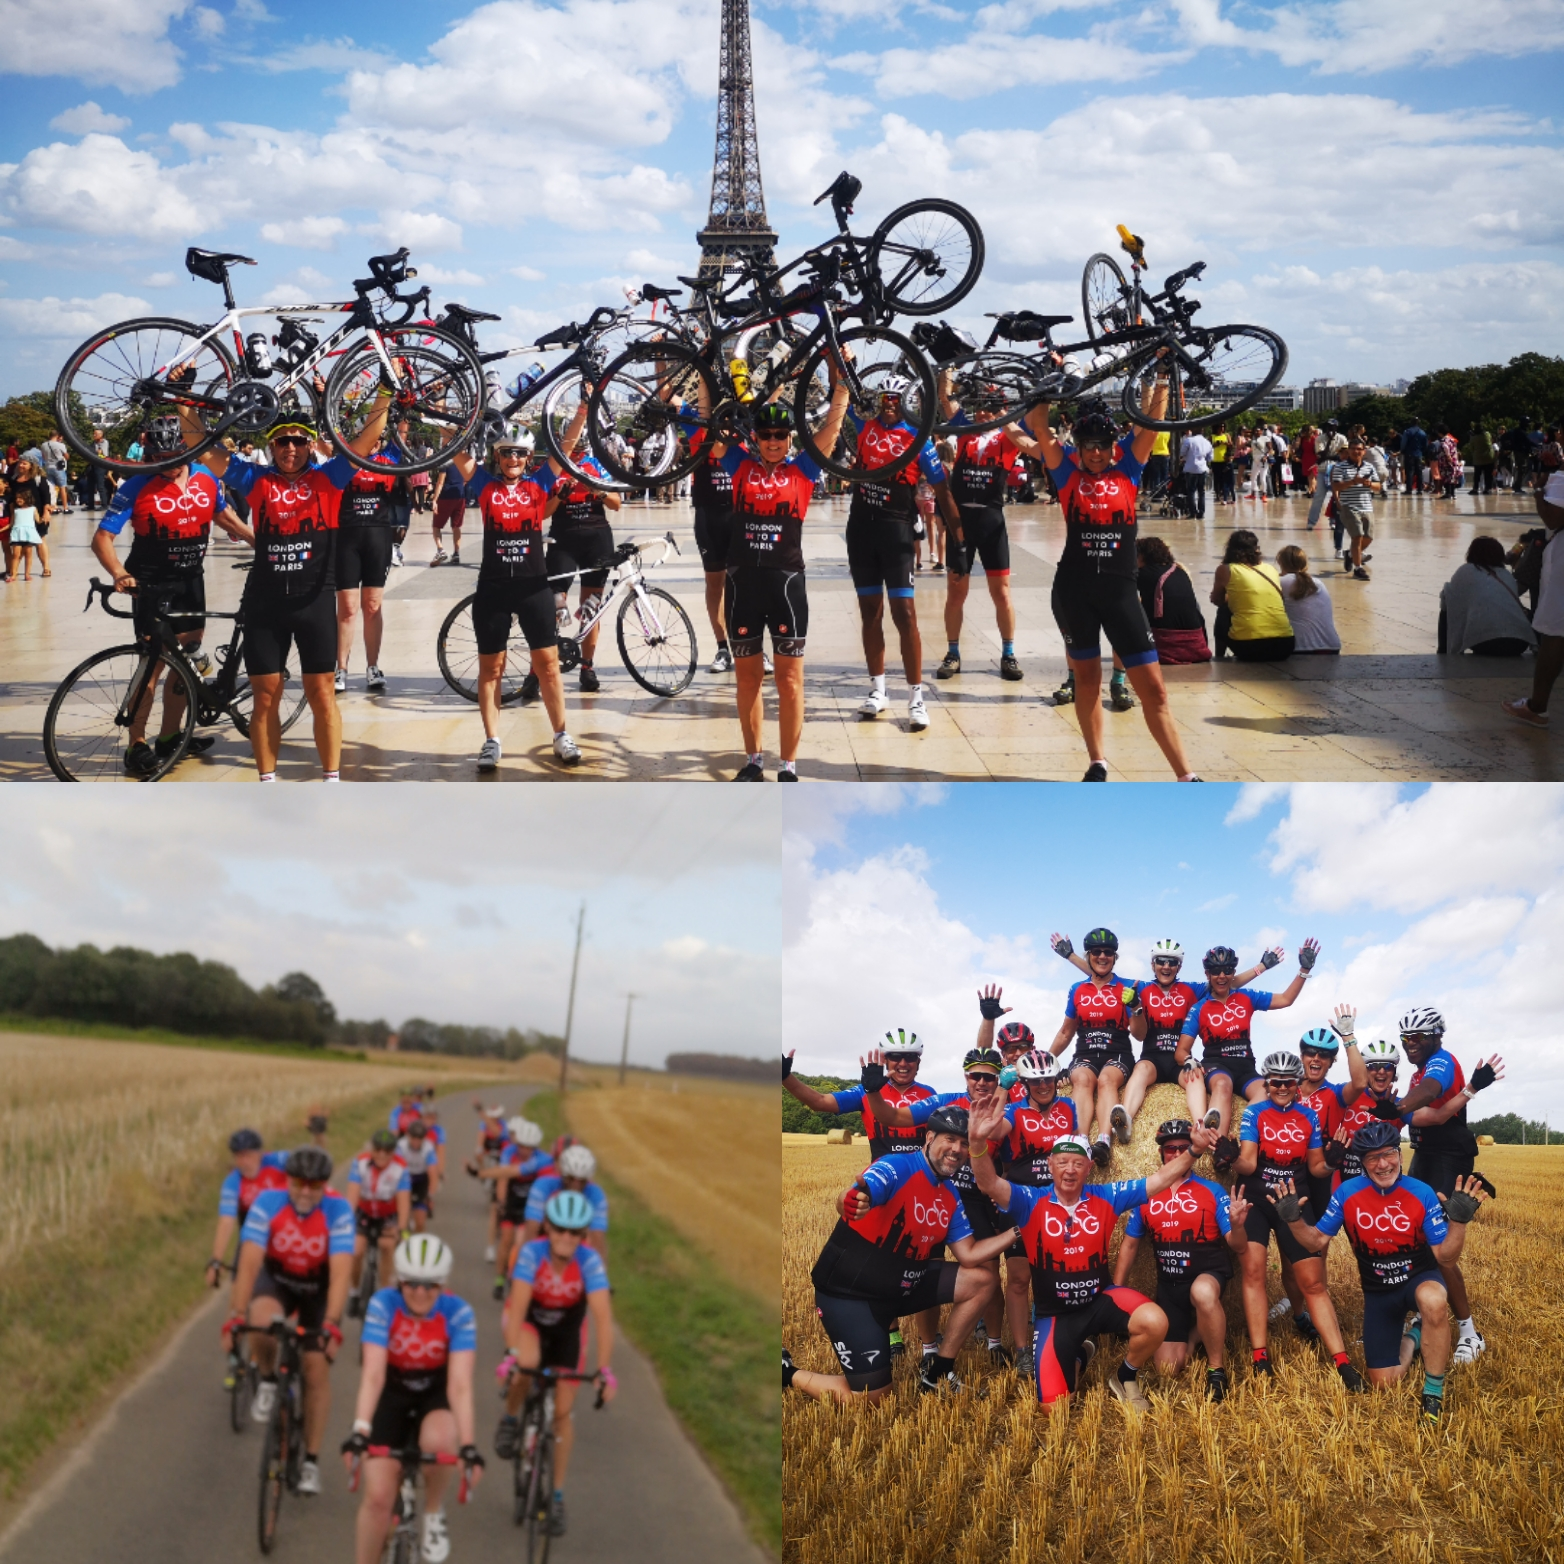 Cyclists in Paris after cycling London to Paris bike ride